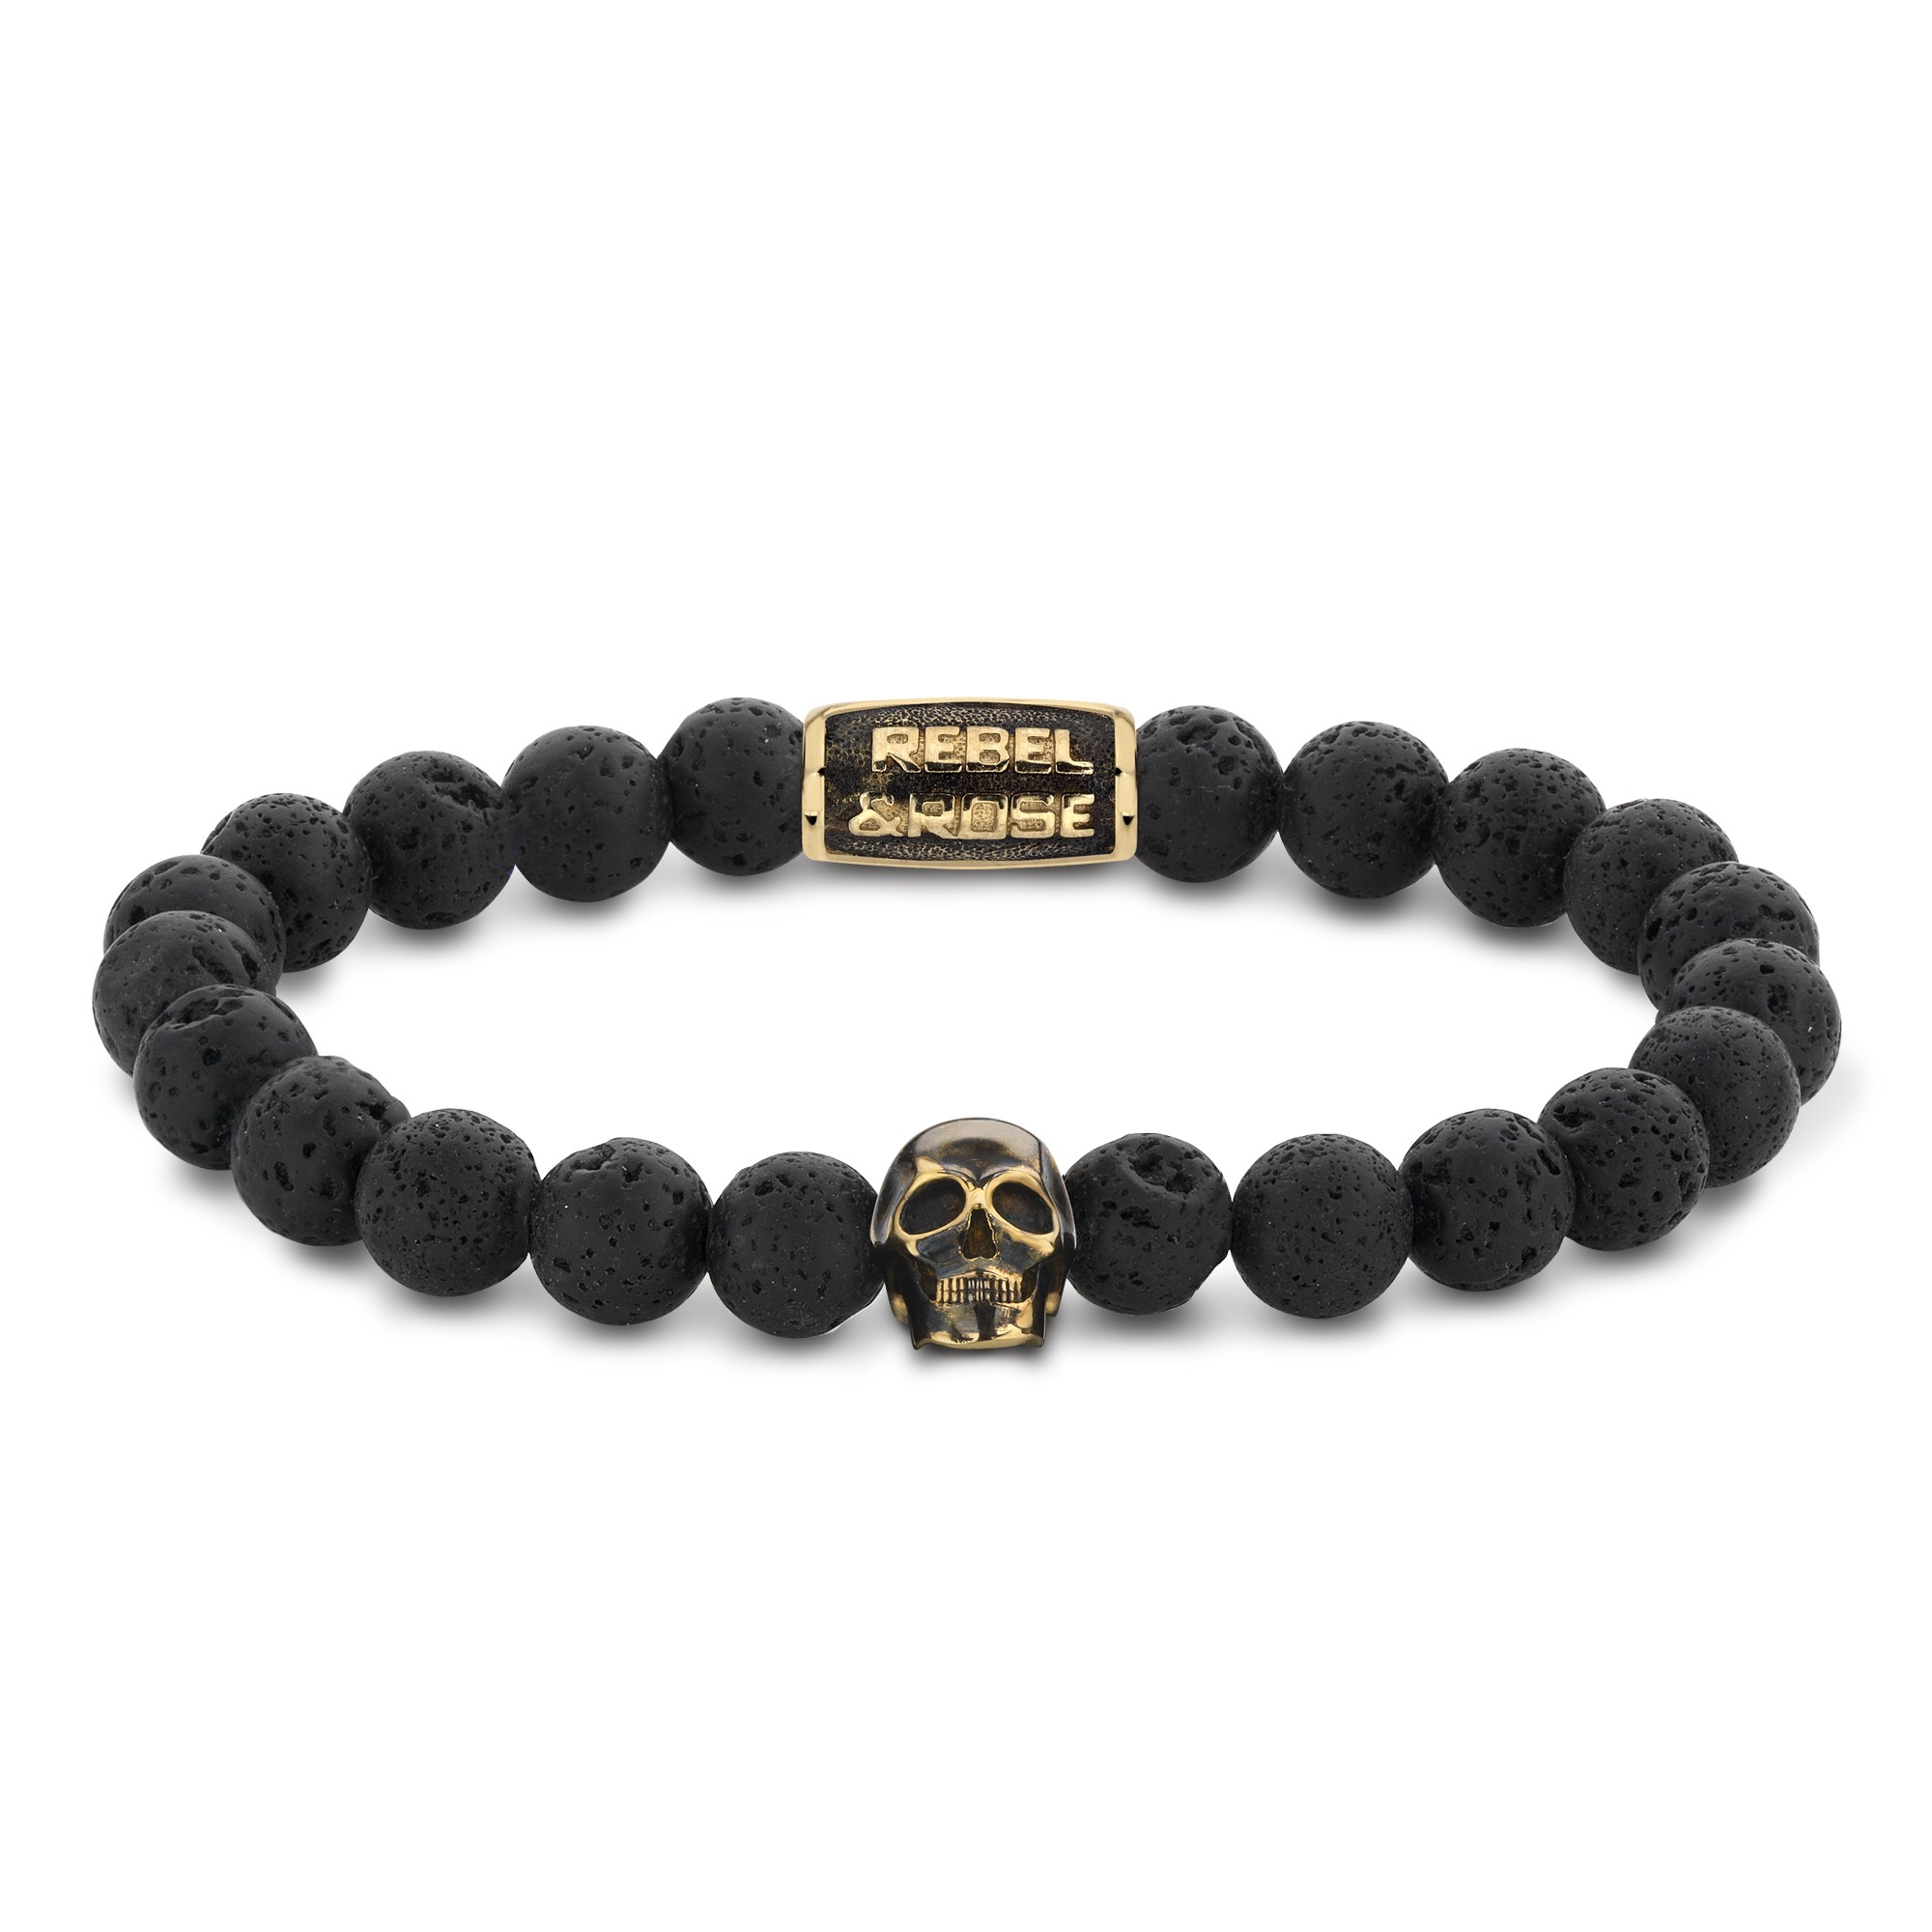 Rebel and Rose RR-SK002-G-S Armband Skull Black Moon - yellow gold plated S 8mm 16.5